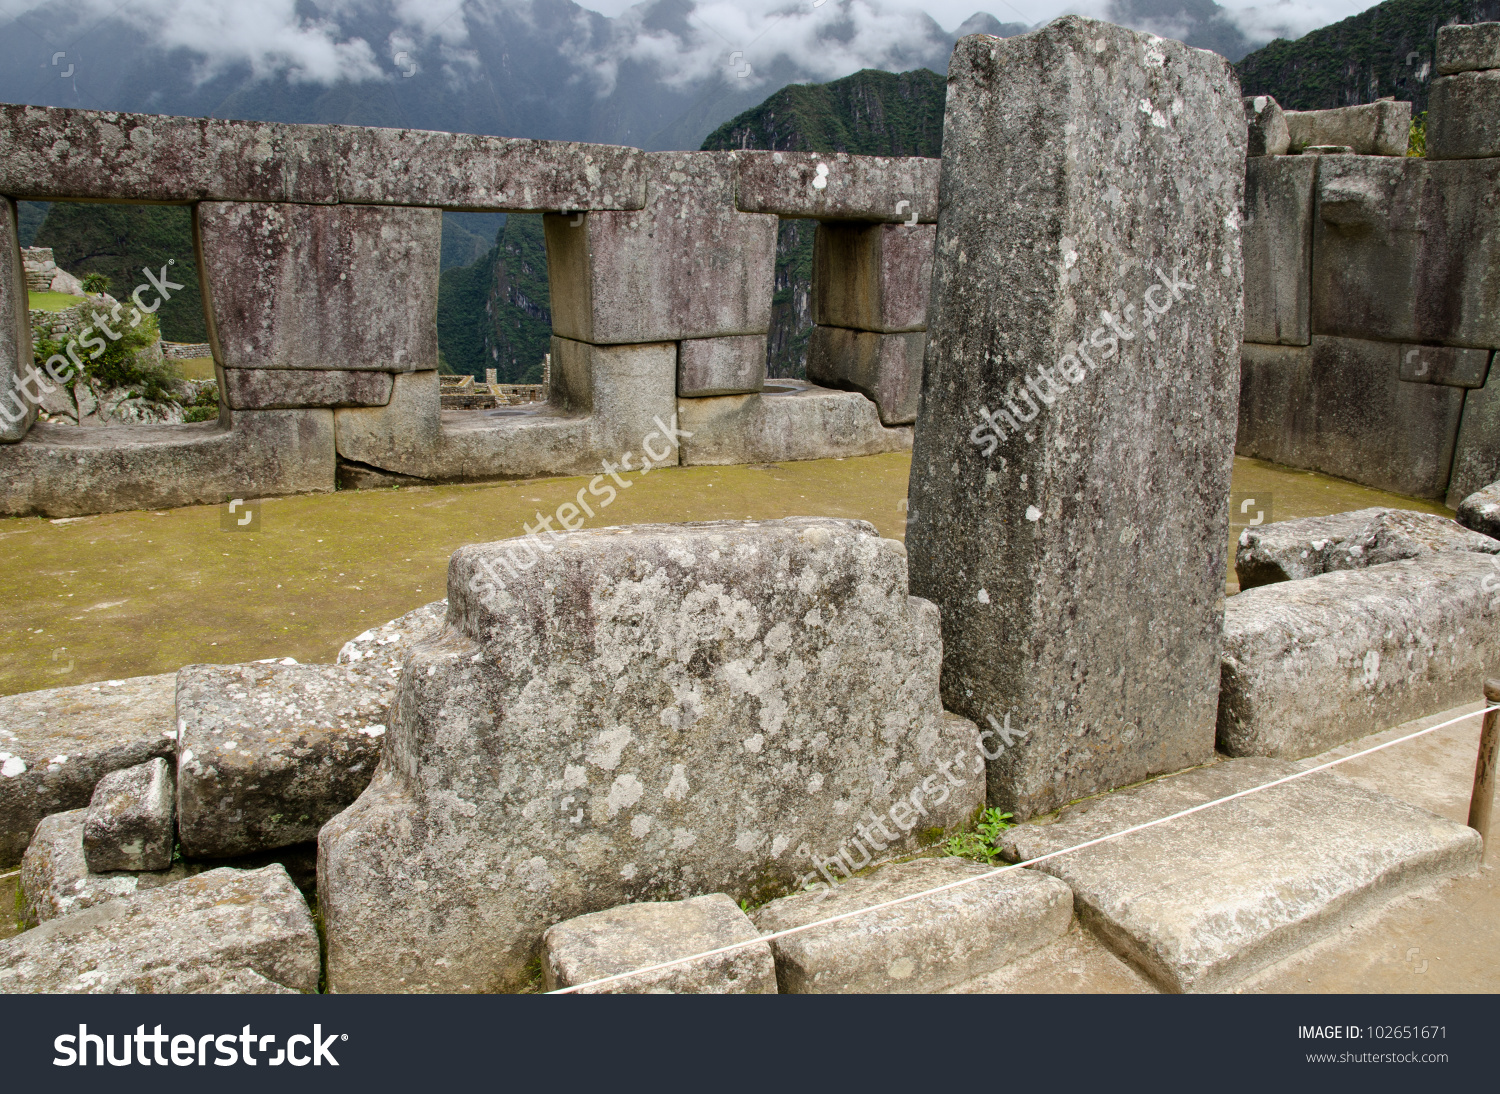 Temple Of The Three Windows On The Sacred Plaza In Machu Picchu.